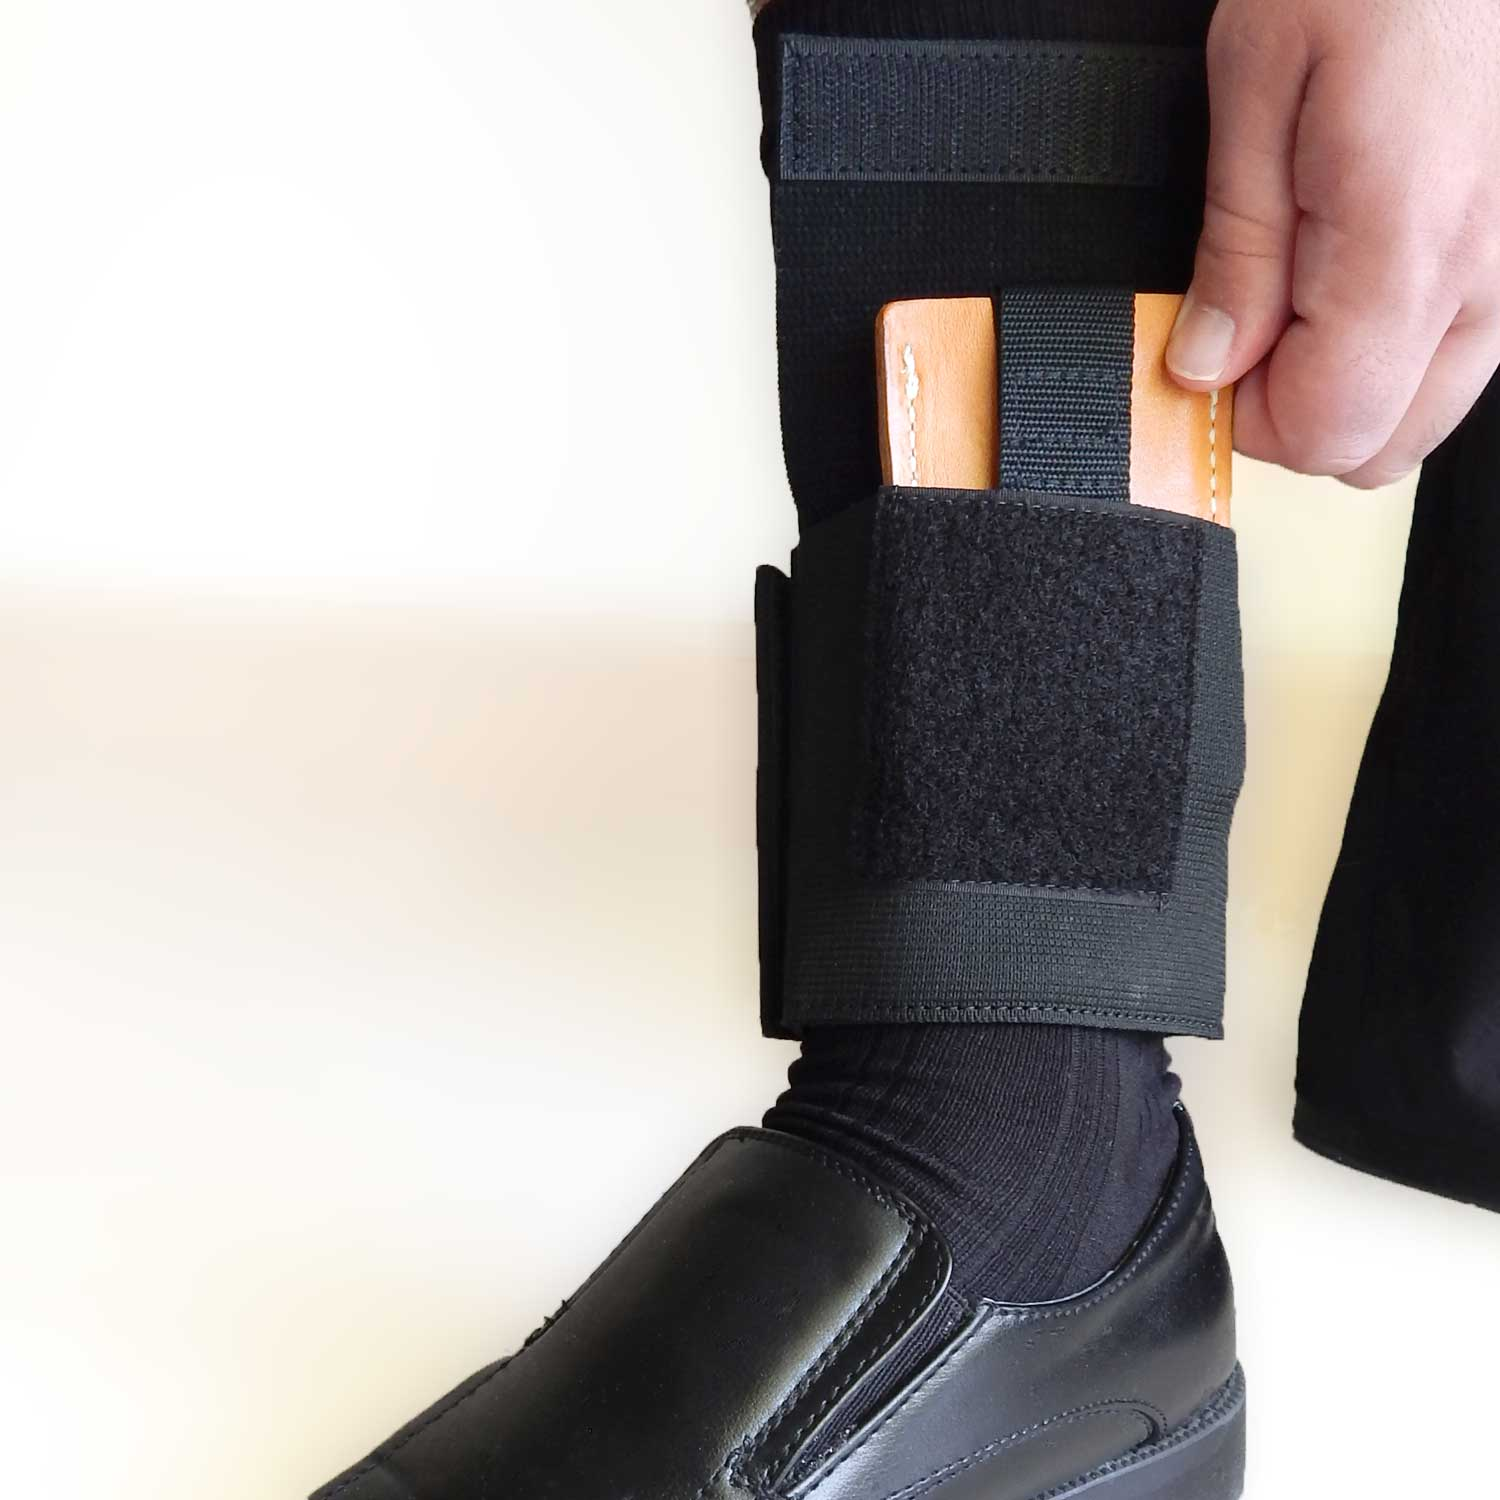 Model 13 Ankle Safe. Carry, completely concealed, your valuables in safety and comfort